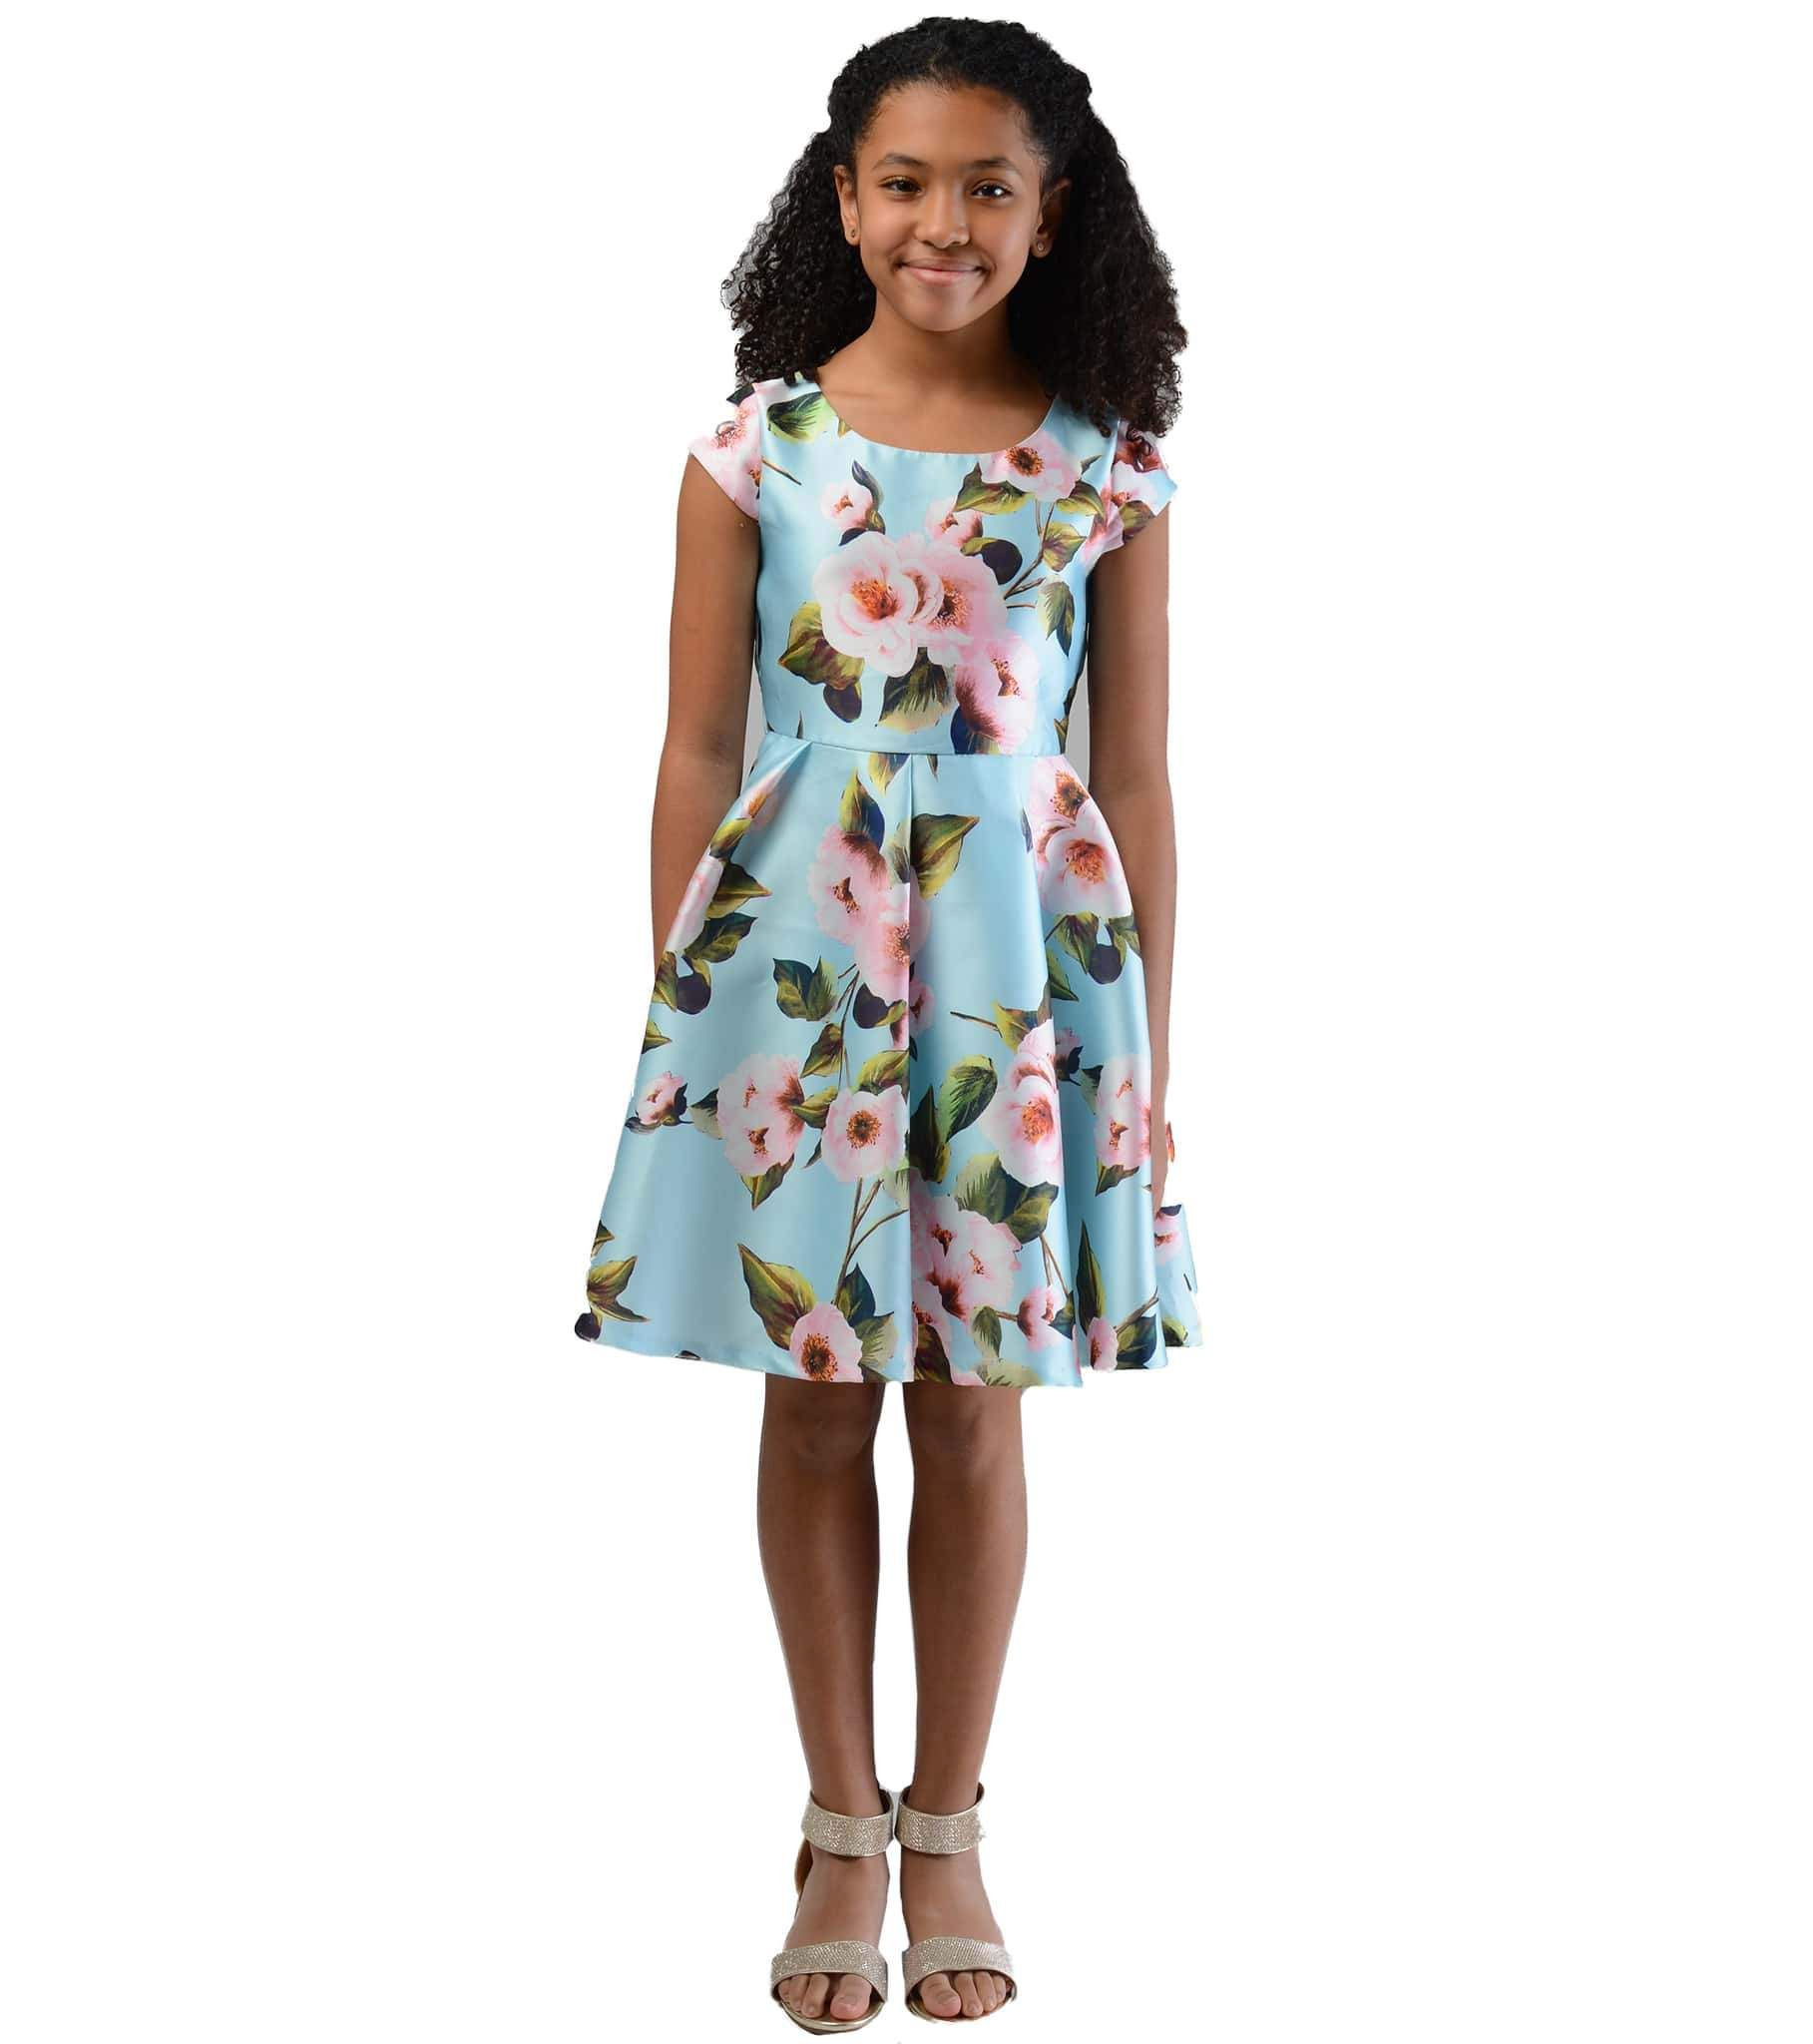 f8c78c63942ec big girls party dress, party dresses for big girls, special occasion dress,